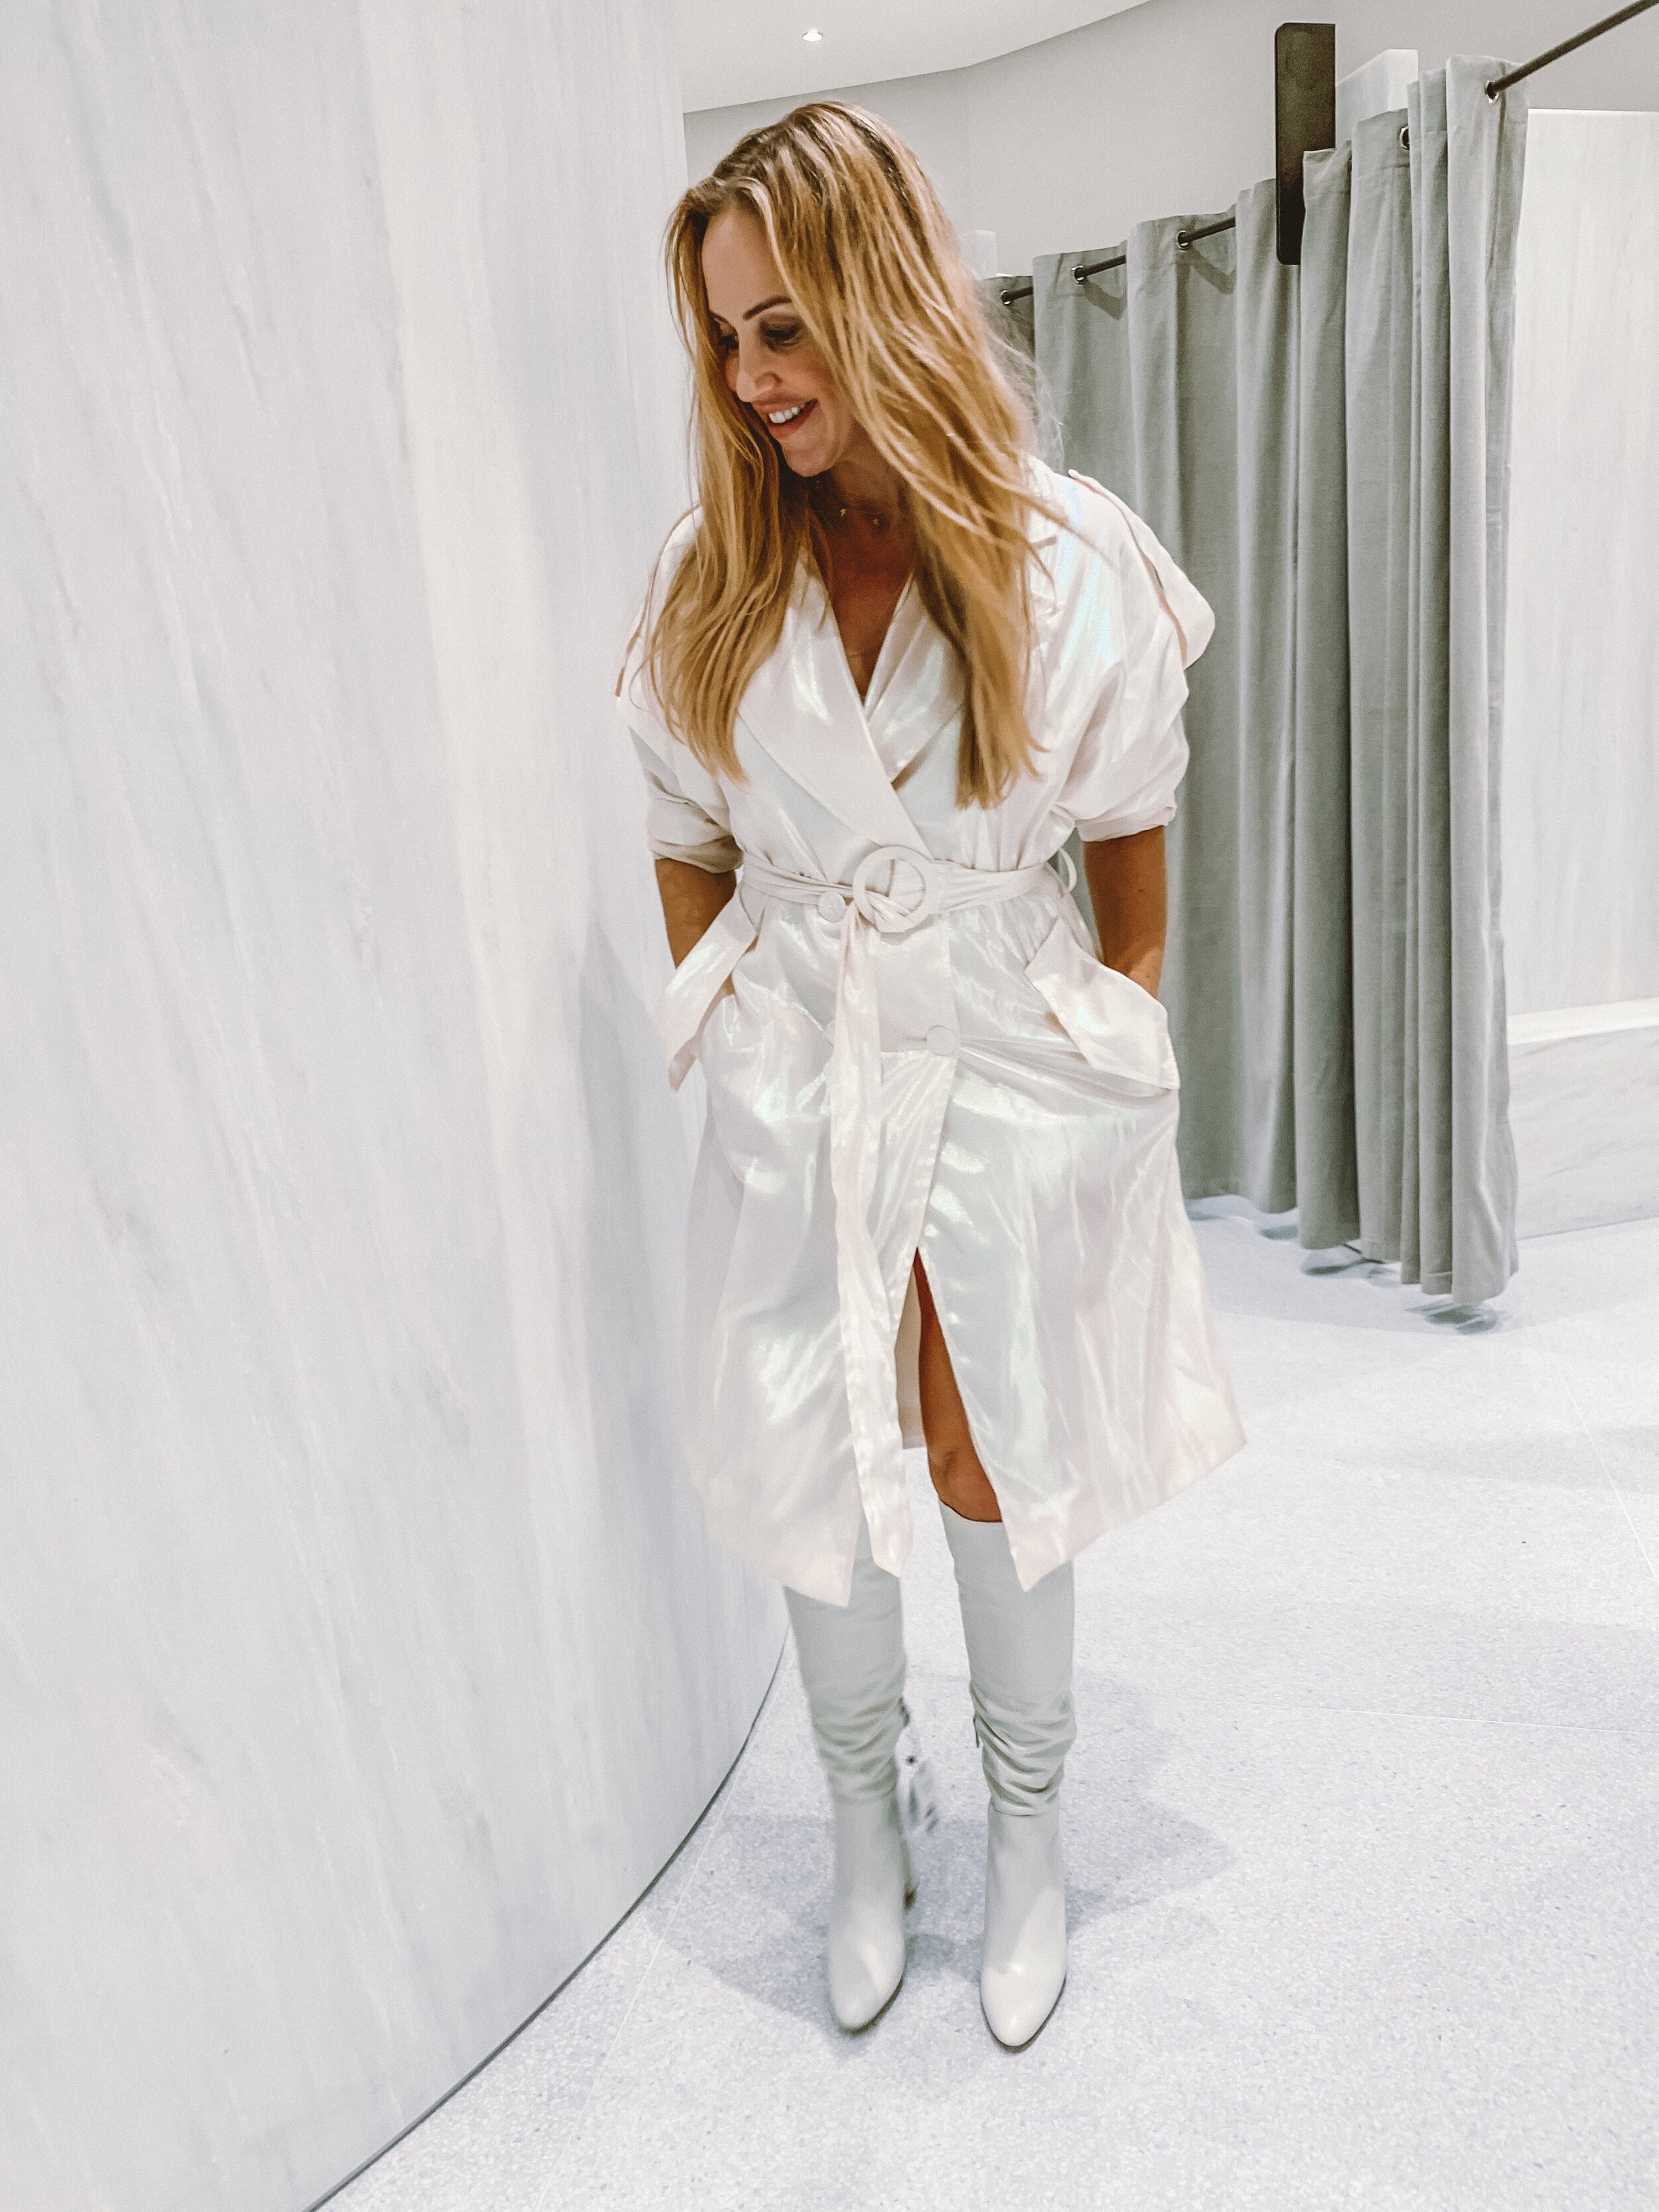 The iridescent trench and white boots that work better in the white marble changing rooms than in real life